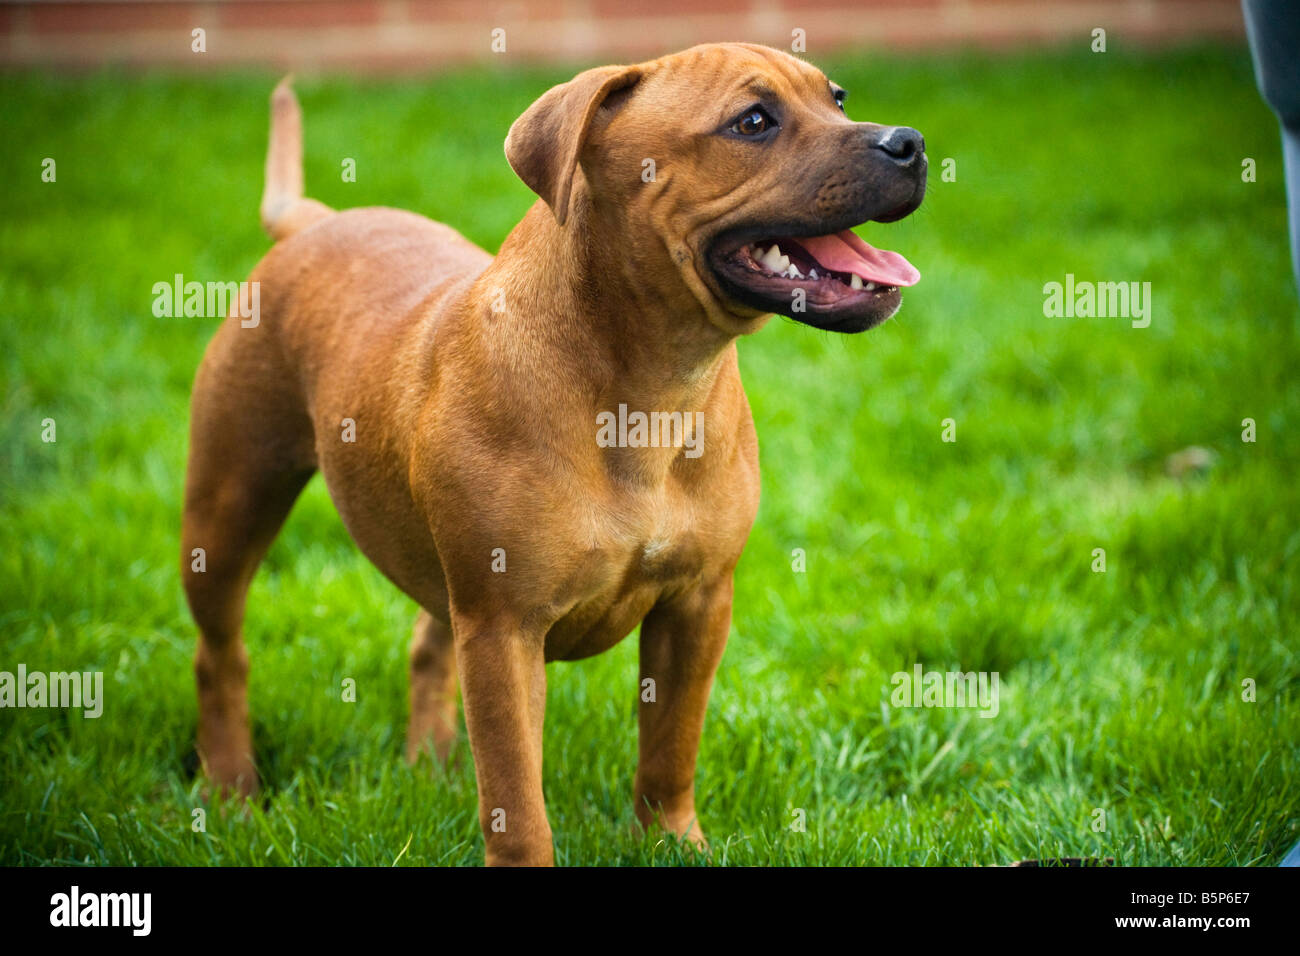 A proud Staffordshire Bull terrier posing on the lawn - Stock Image